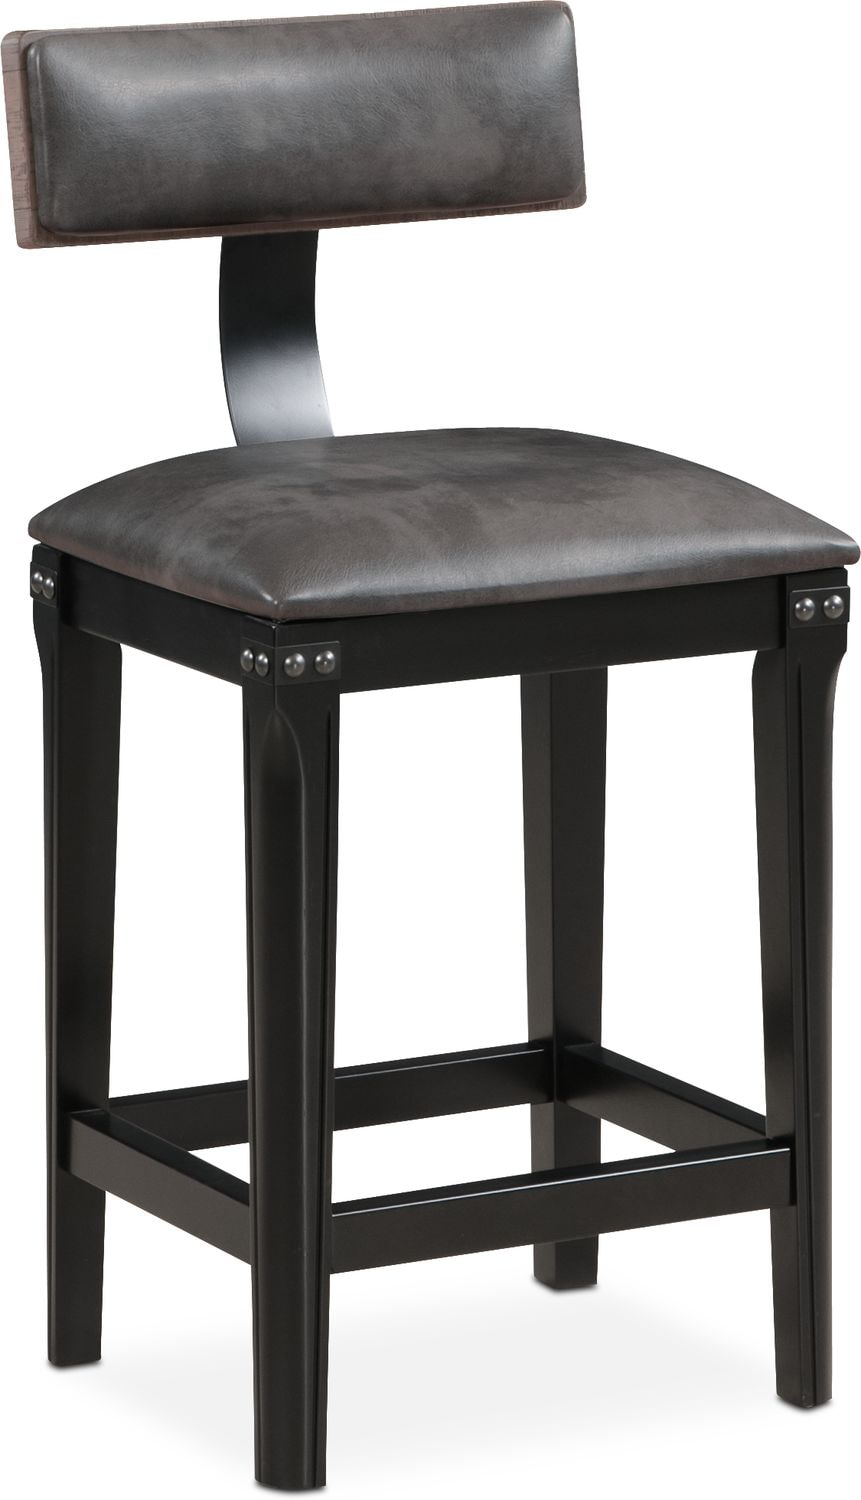 Dining Room Furniture   Newcastle Counter Height Stool   Gray